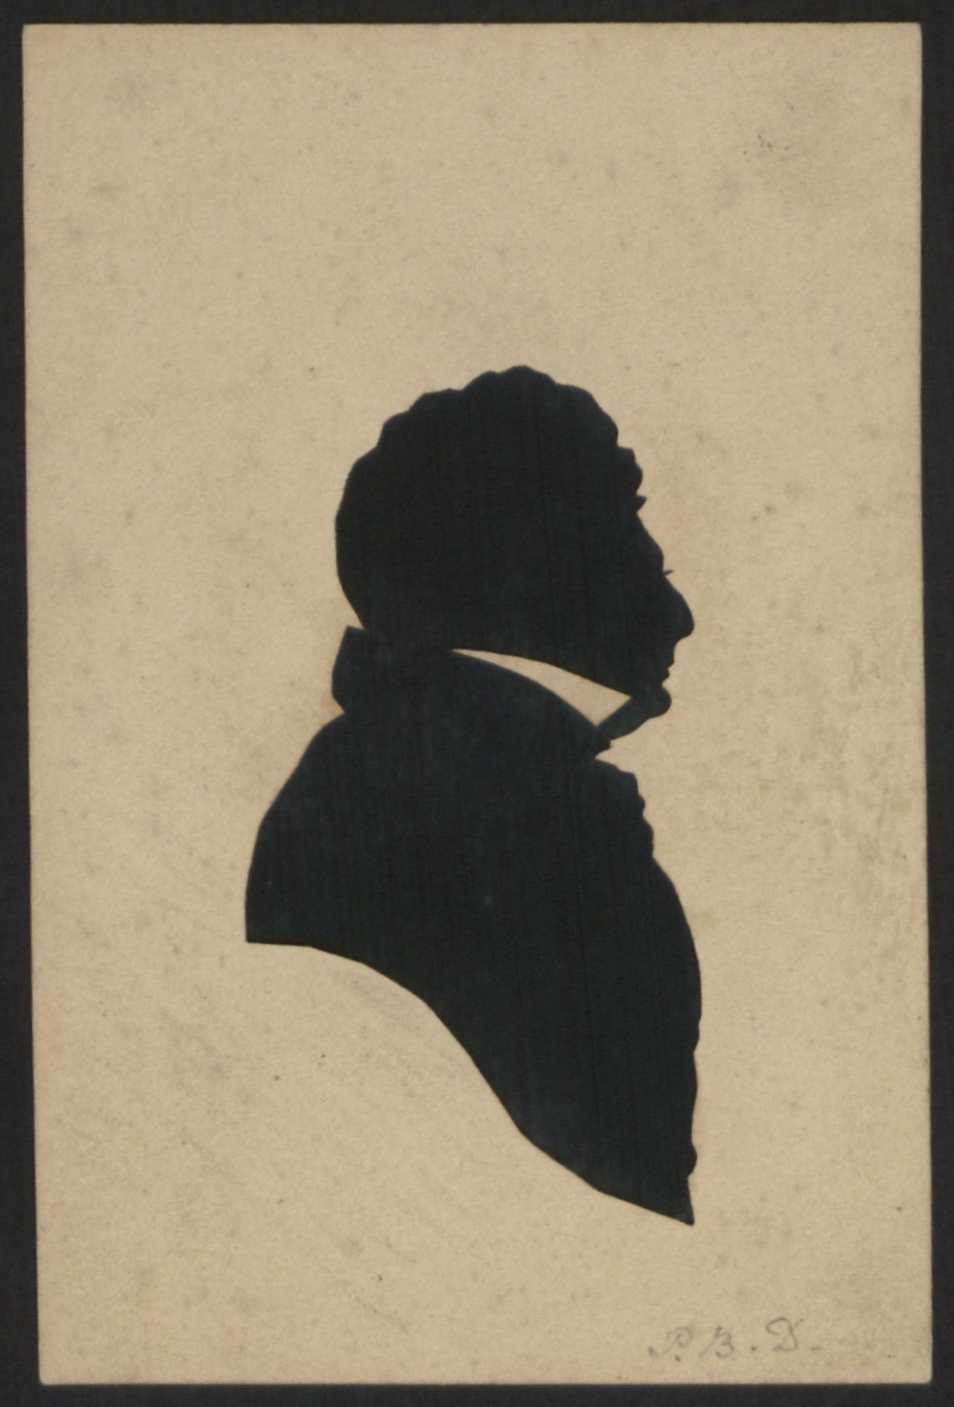 preview image for Silhouette of Phillip Bury Duncan, by Augustin Edouart, c.1830